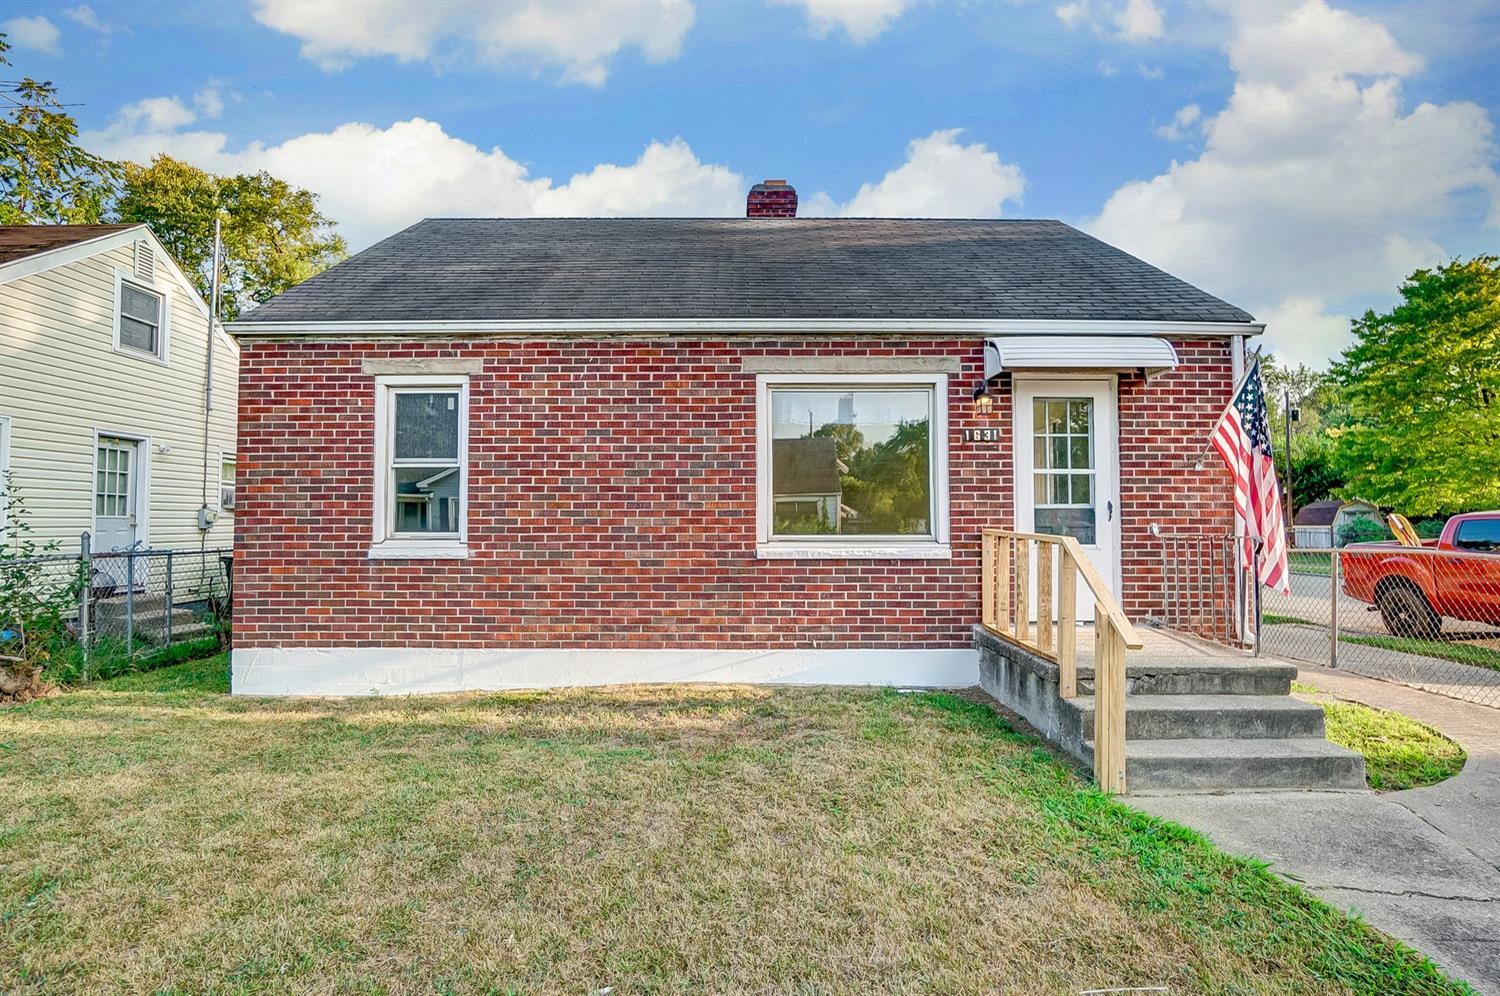 Photo 2 for 1631 Lawn Ave Middletown South, OH 45044